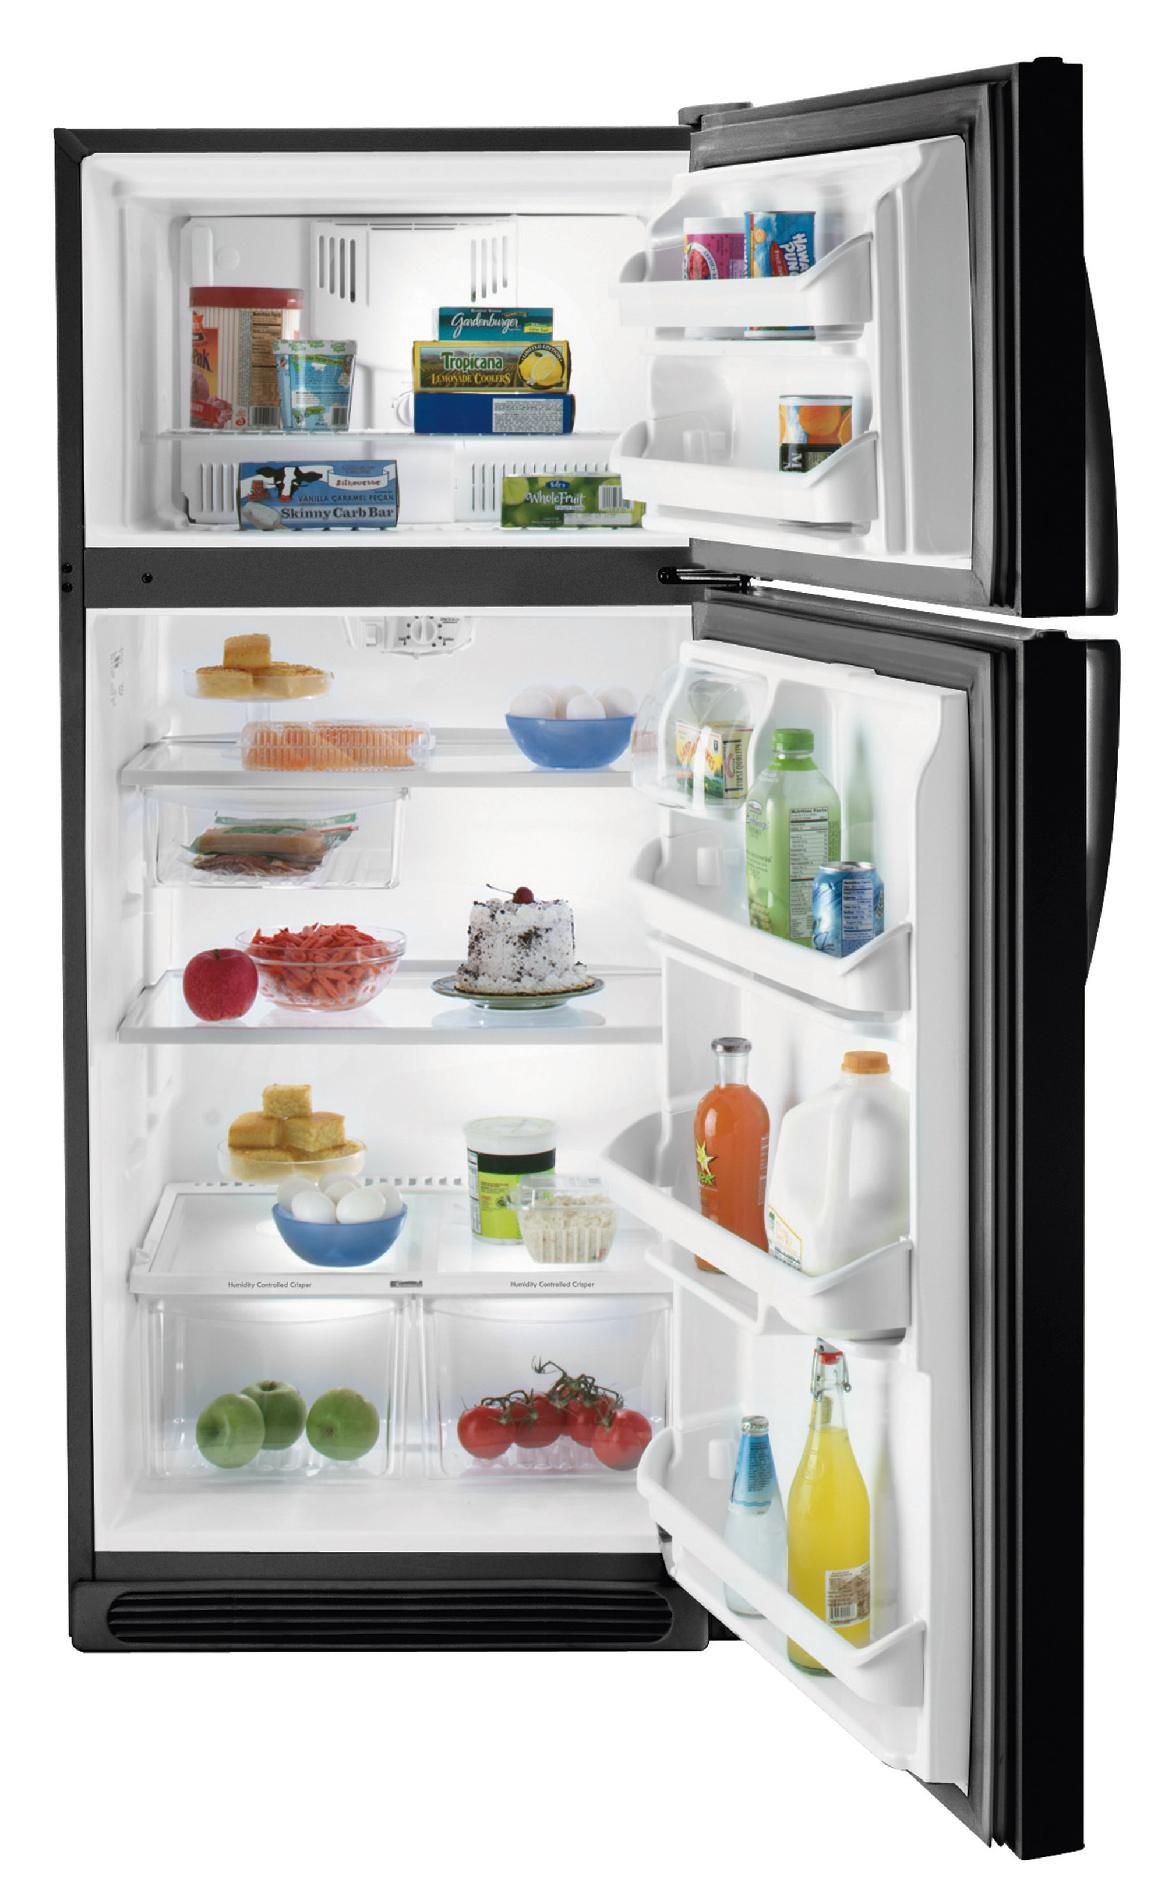 Kenmore 20.6 cu. ft. Top-Freezer Refrigerator, Non-Ice